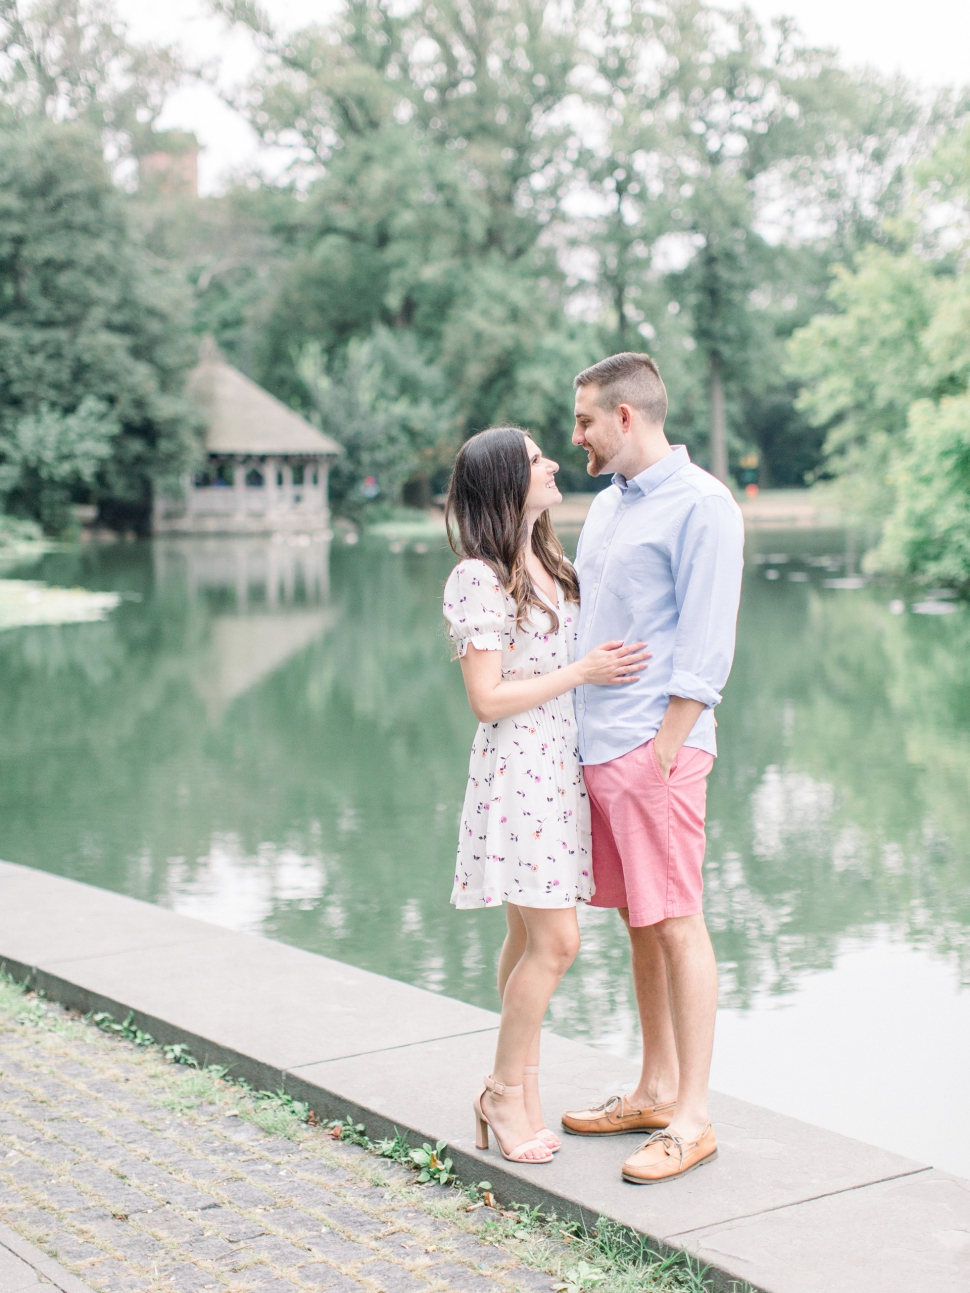 New-York-Wedding-Photographer-Cassi-Claire-Prospect-Park-Boathouse-Engagement_10.jpg